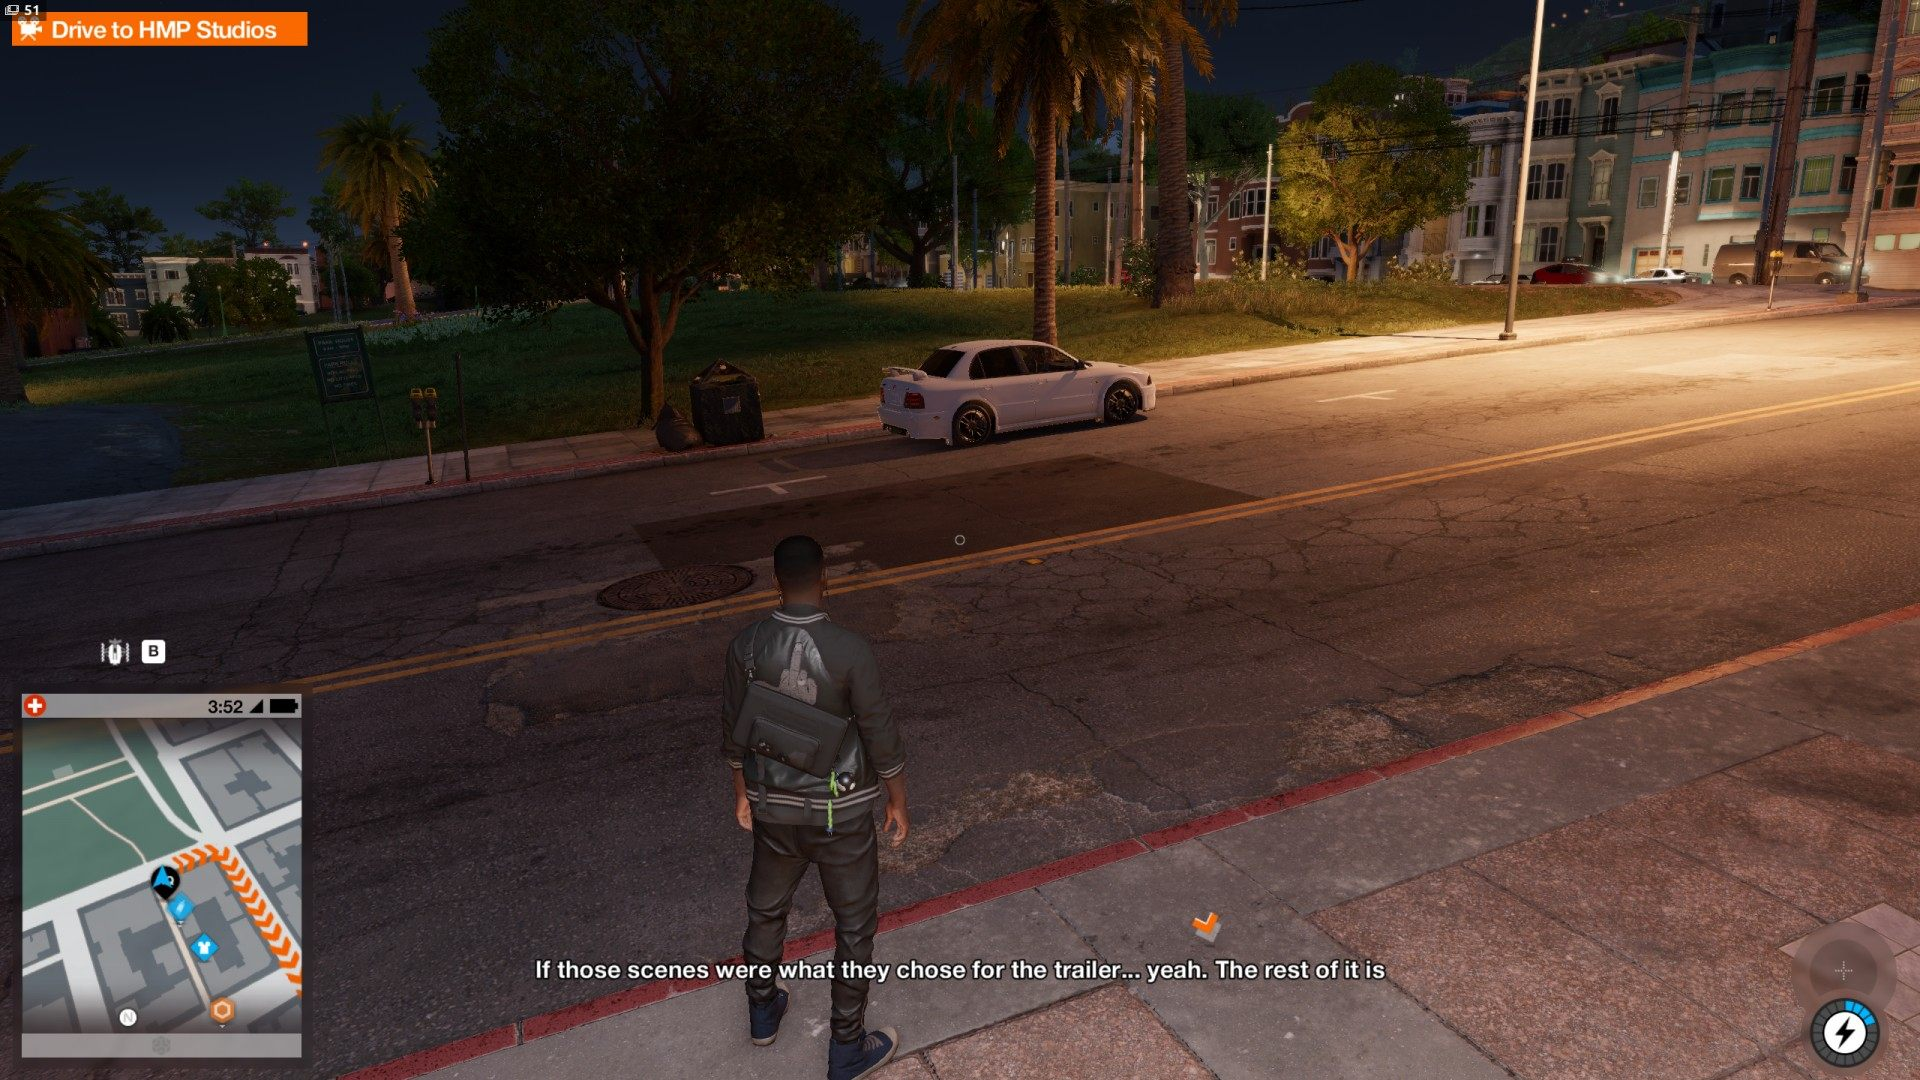 CyberDriver, Watch Dogs 2 Operation